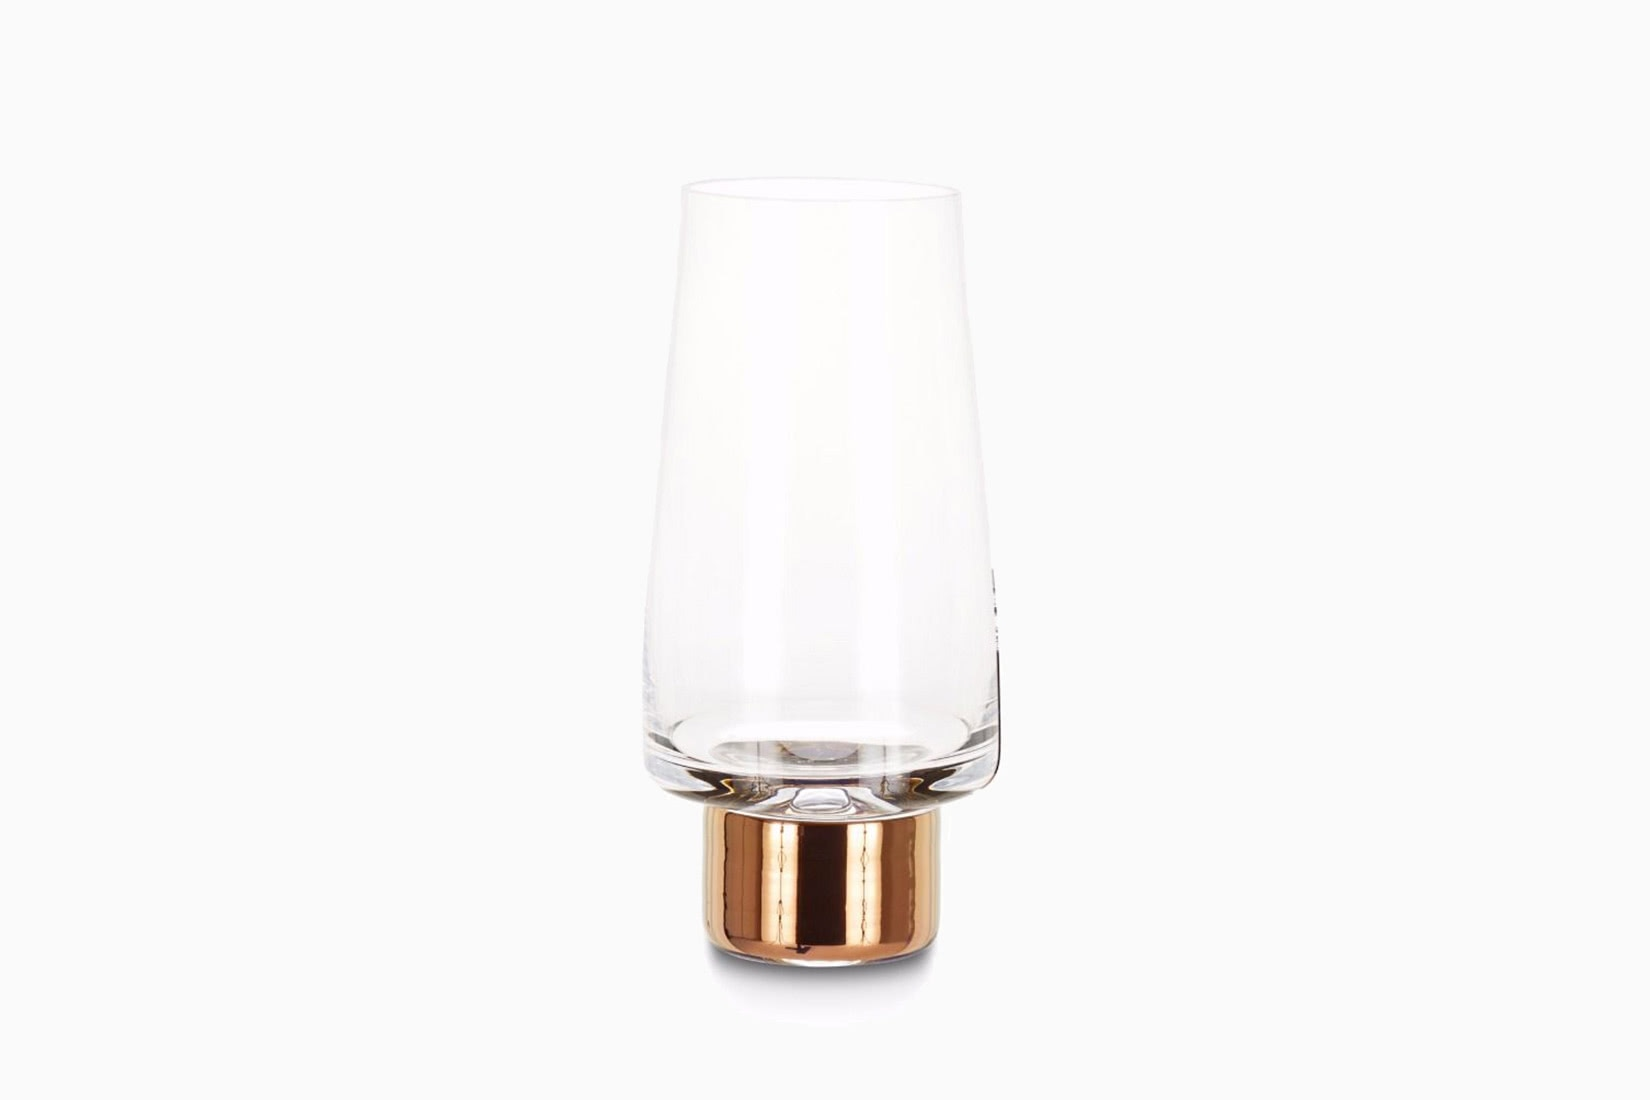 best whisky glass tom dixon tank high ball - Luxe Digital